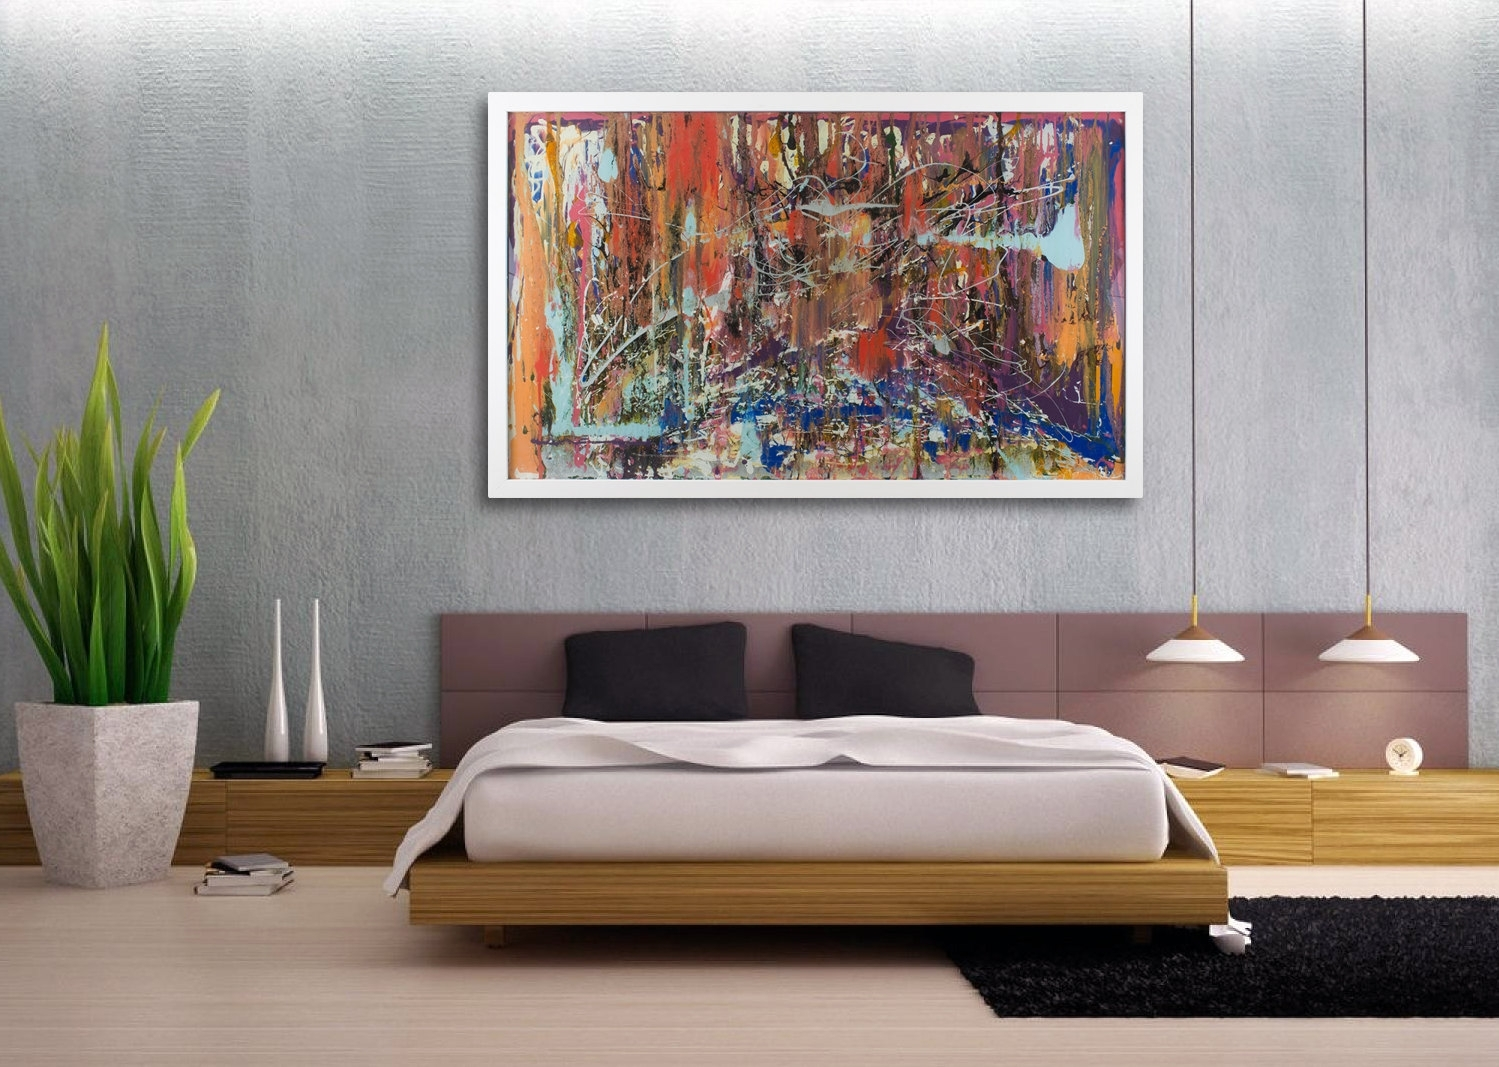 Expensive Large Canvas Wall Art Bedroom — Joanne Russo Homesjoanne Intended For Most Recently Released Large Canvas Wall Art (View 8 of 15)